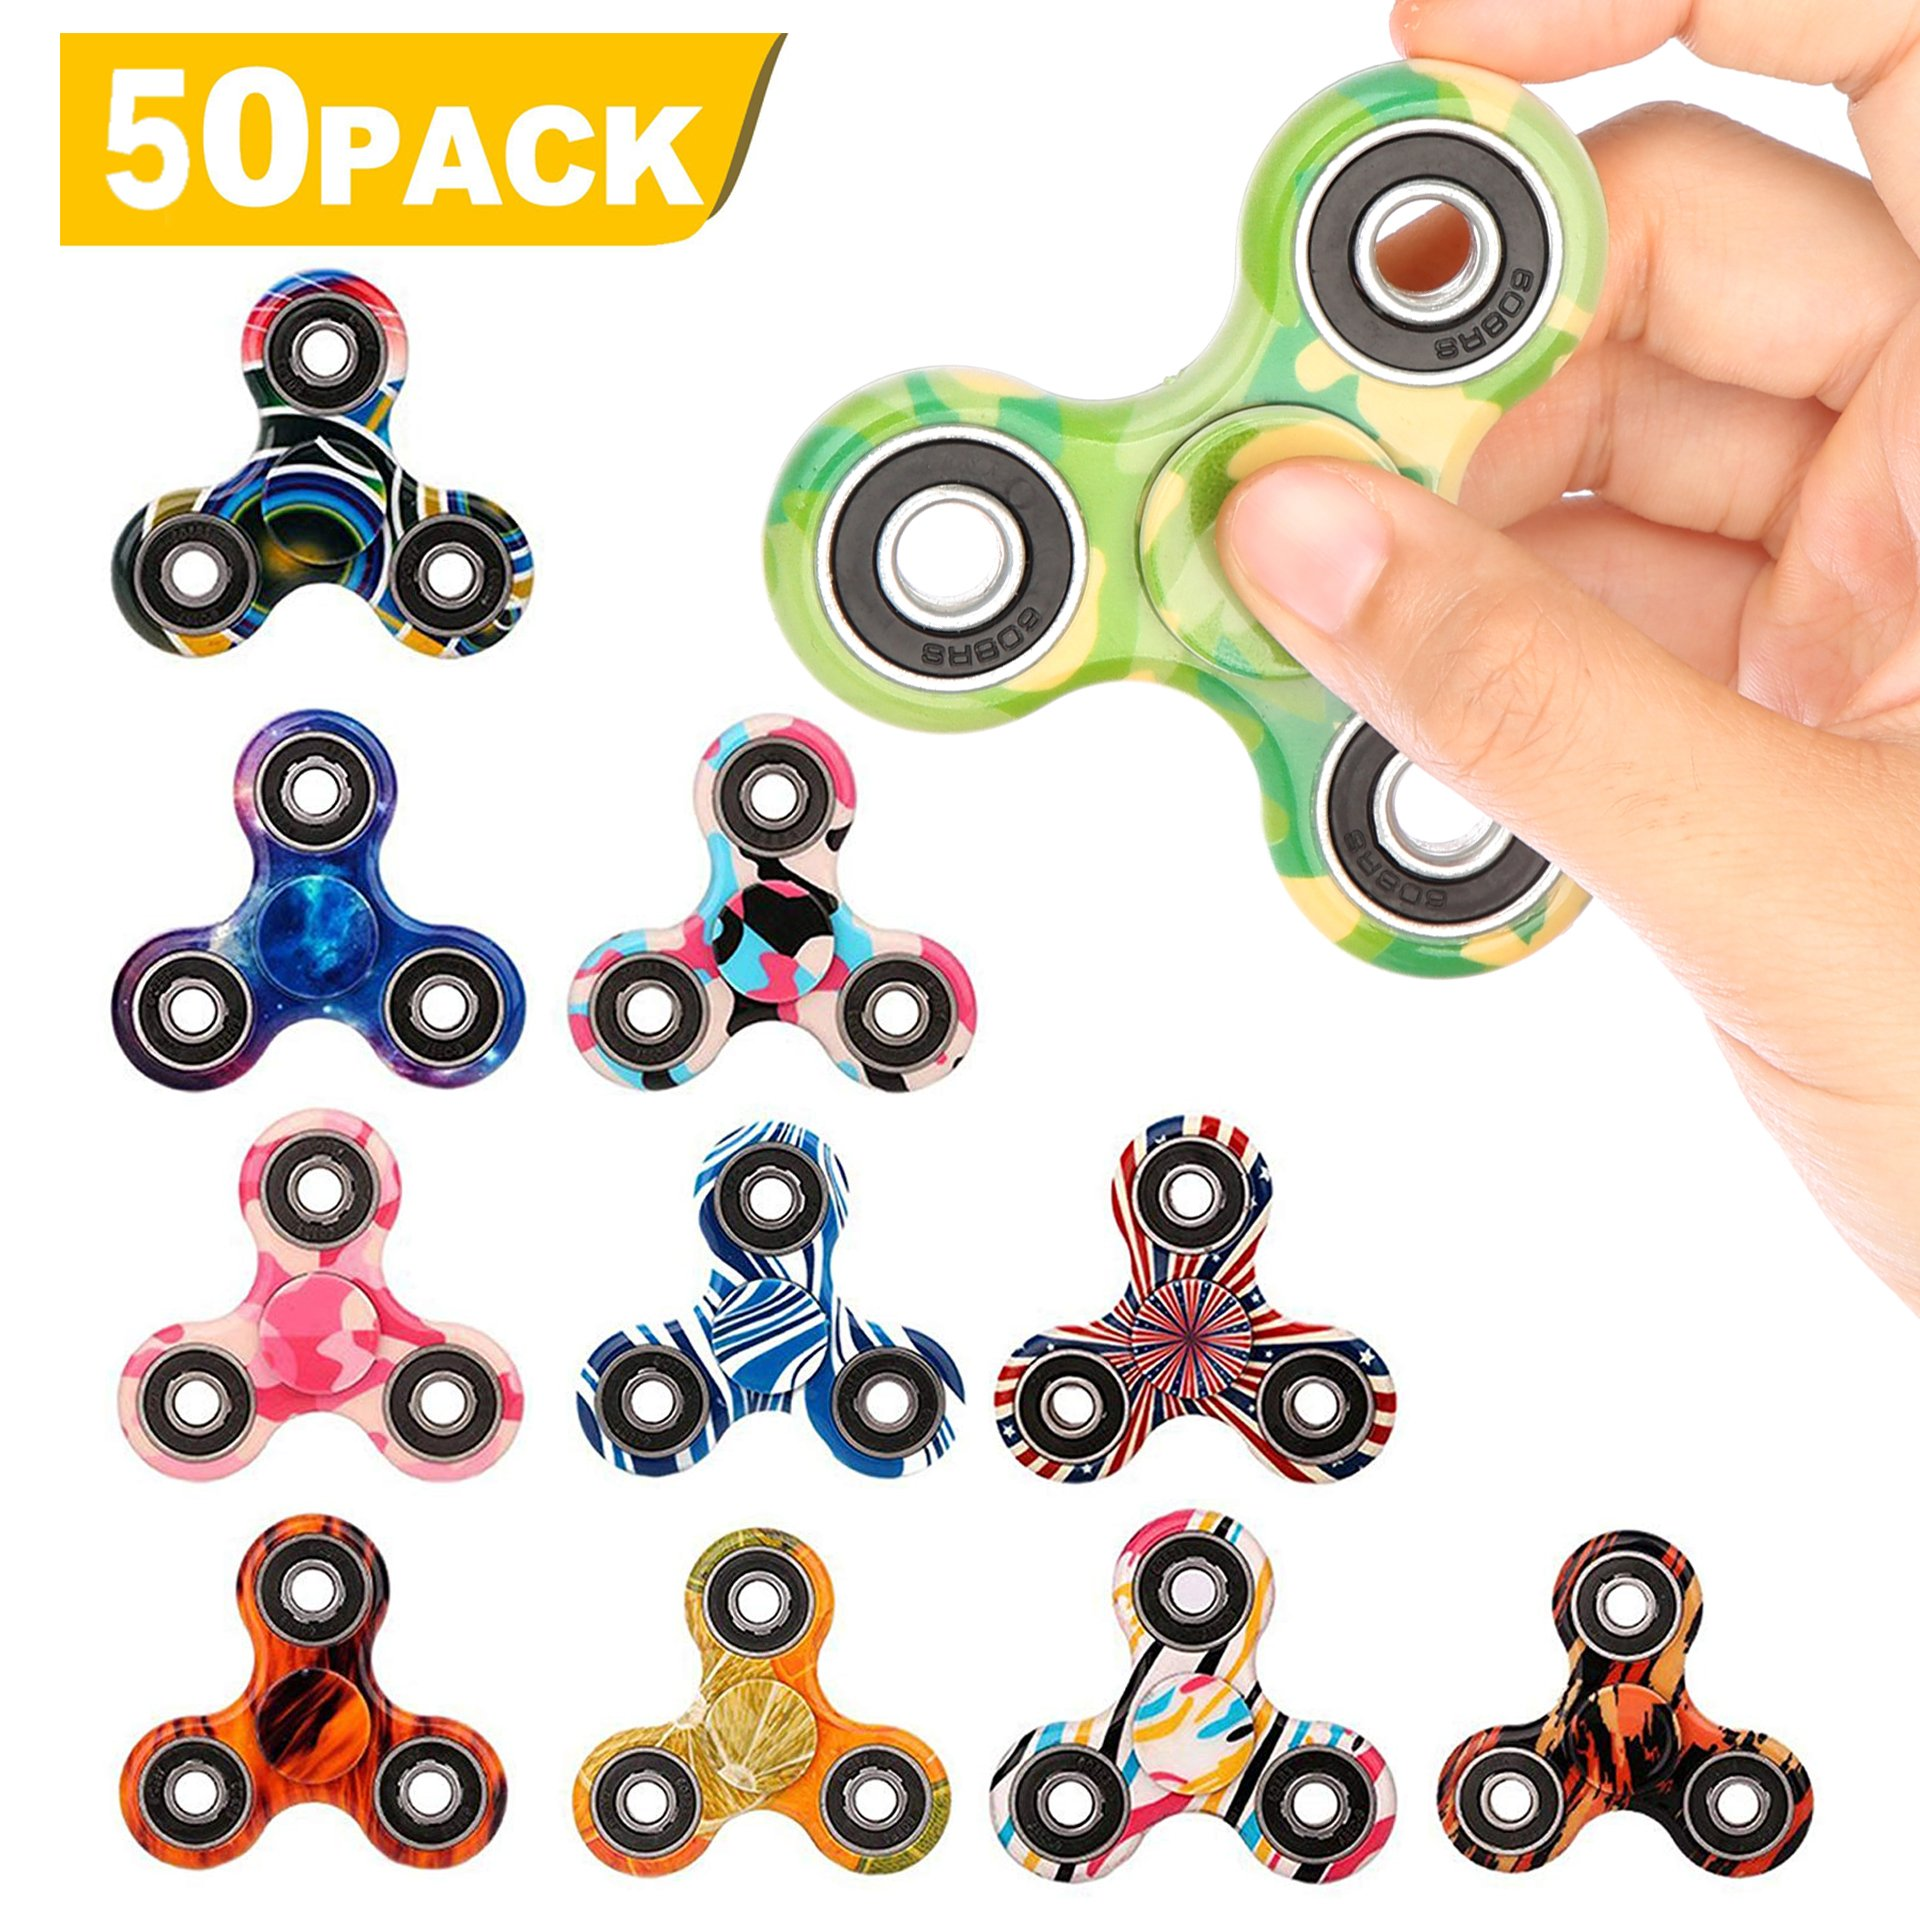 SCIONE 50 Pack Fidget Spinner ADHD Anxiety Stress Relief Toys for Adults Kids Autism Fidgets Best EDC Hand Spinners Bearing Trispinner Finger Toy Focus Fidgeting Restless Tri-Spinner by SCIONE (Image #1)